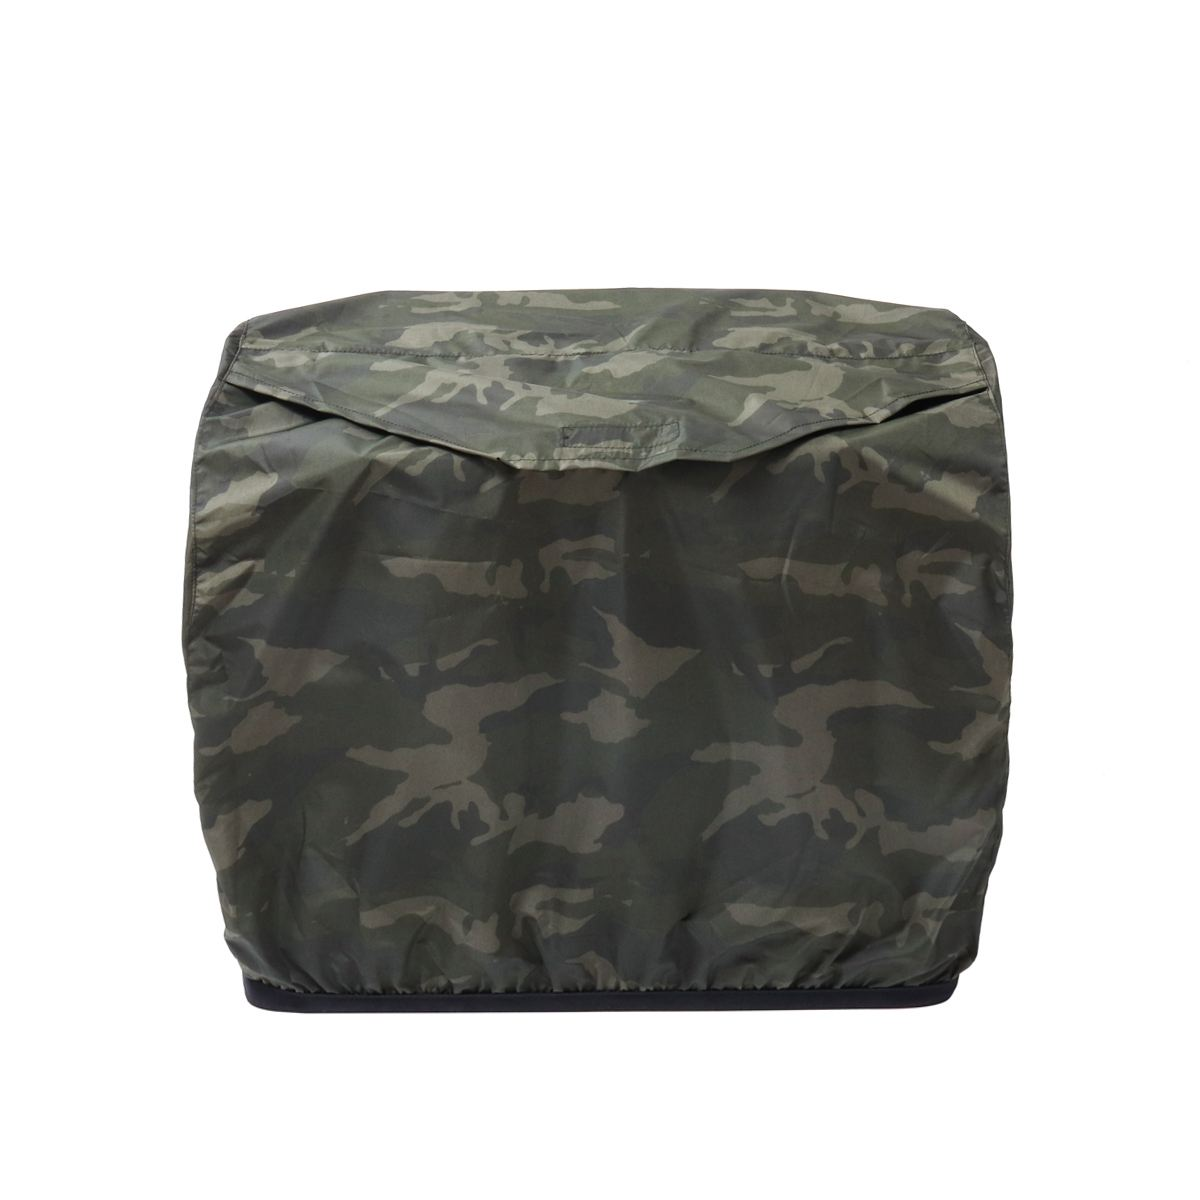 340x562x475mm Camo Green Generator Cover Fits Car  Generator Dust Cover Protect Cover